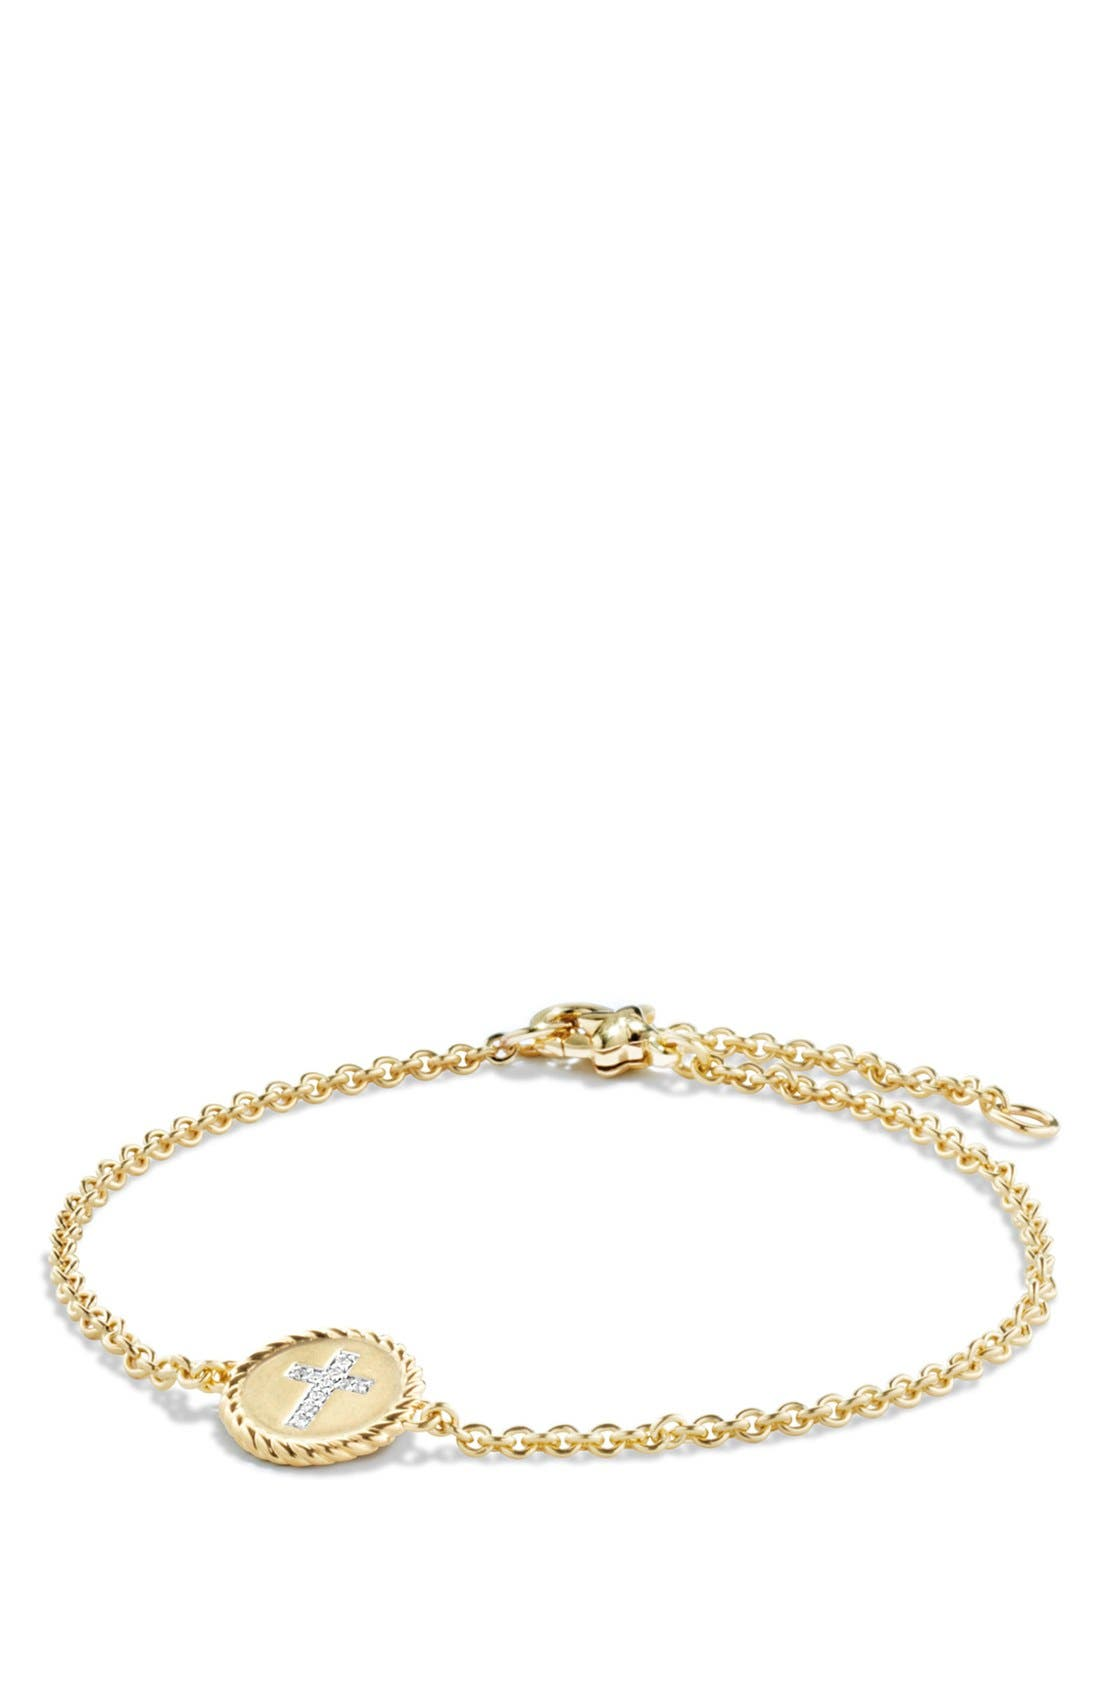 'Cable Collectibles' Cable Pavé Charm Bracelet with Diamonds in Gold,                             Main thumbnail 1, color,                             710